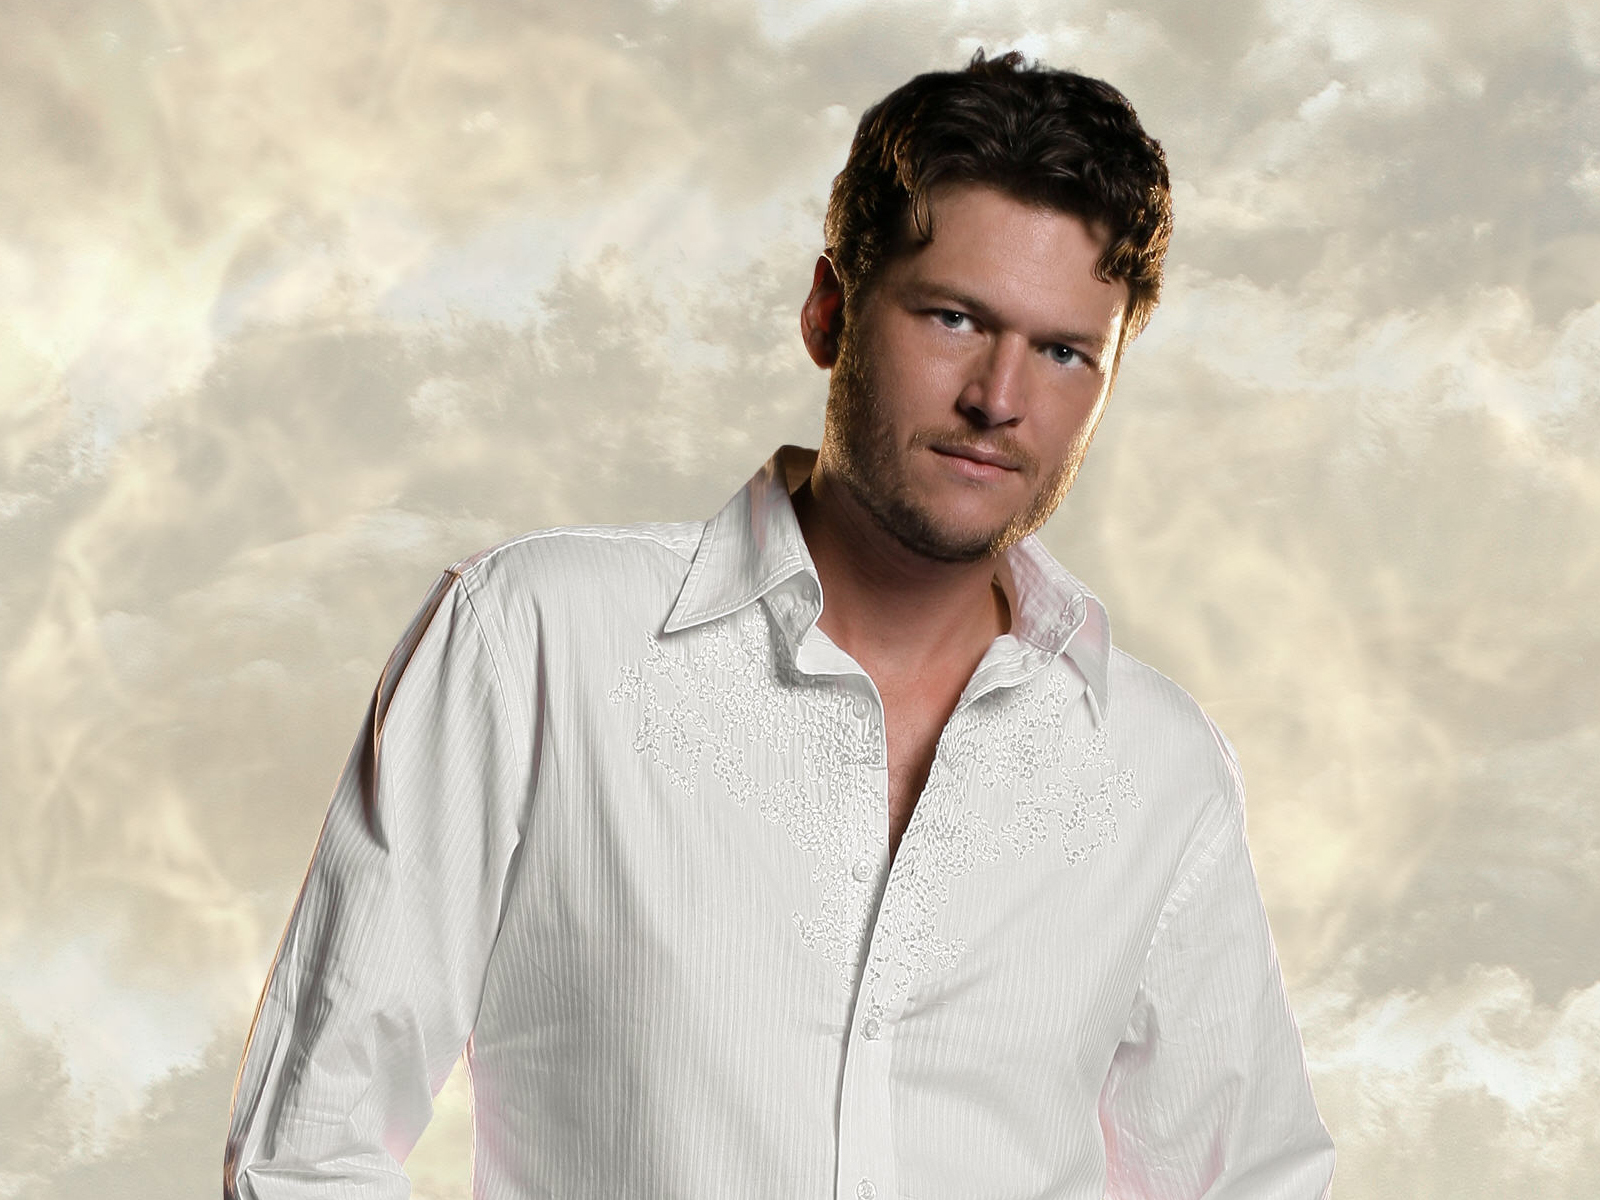 Blake Shelton Wallpaper 7504